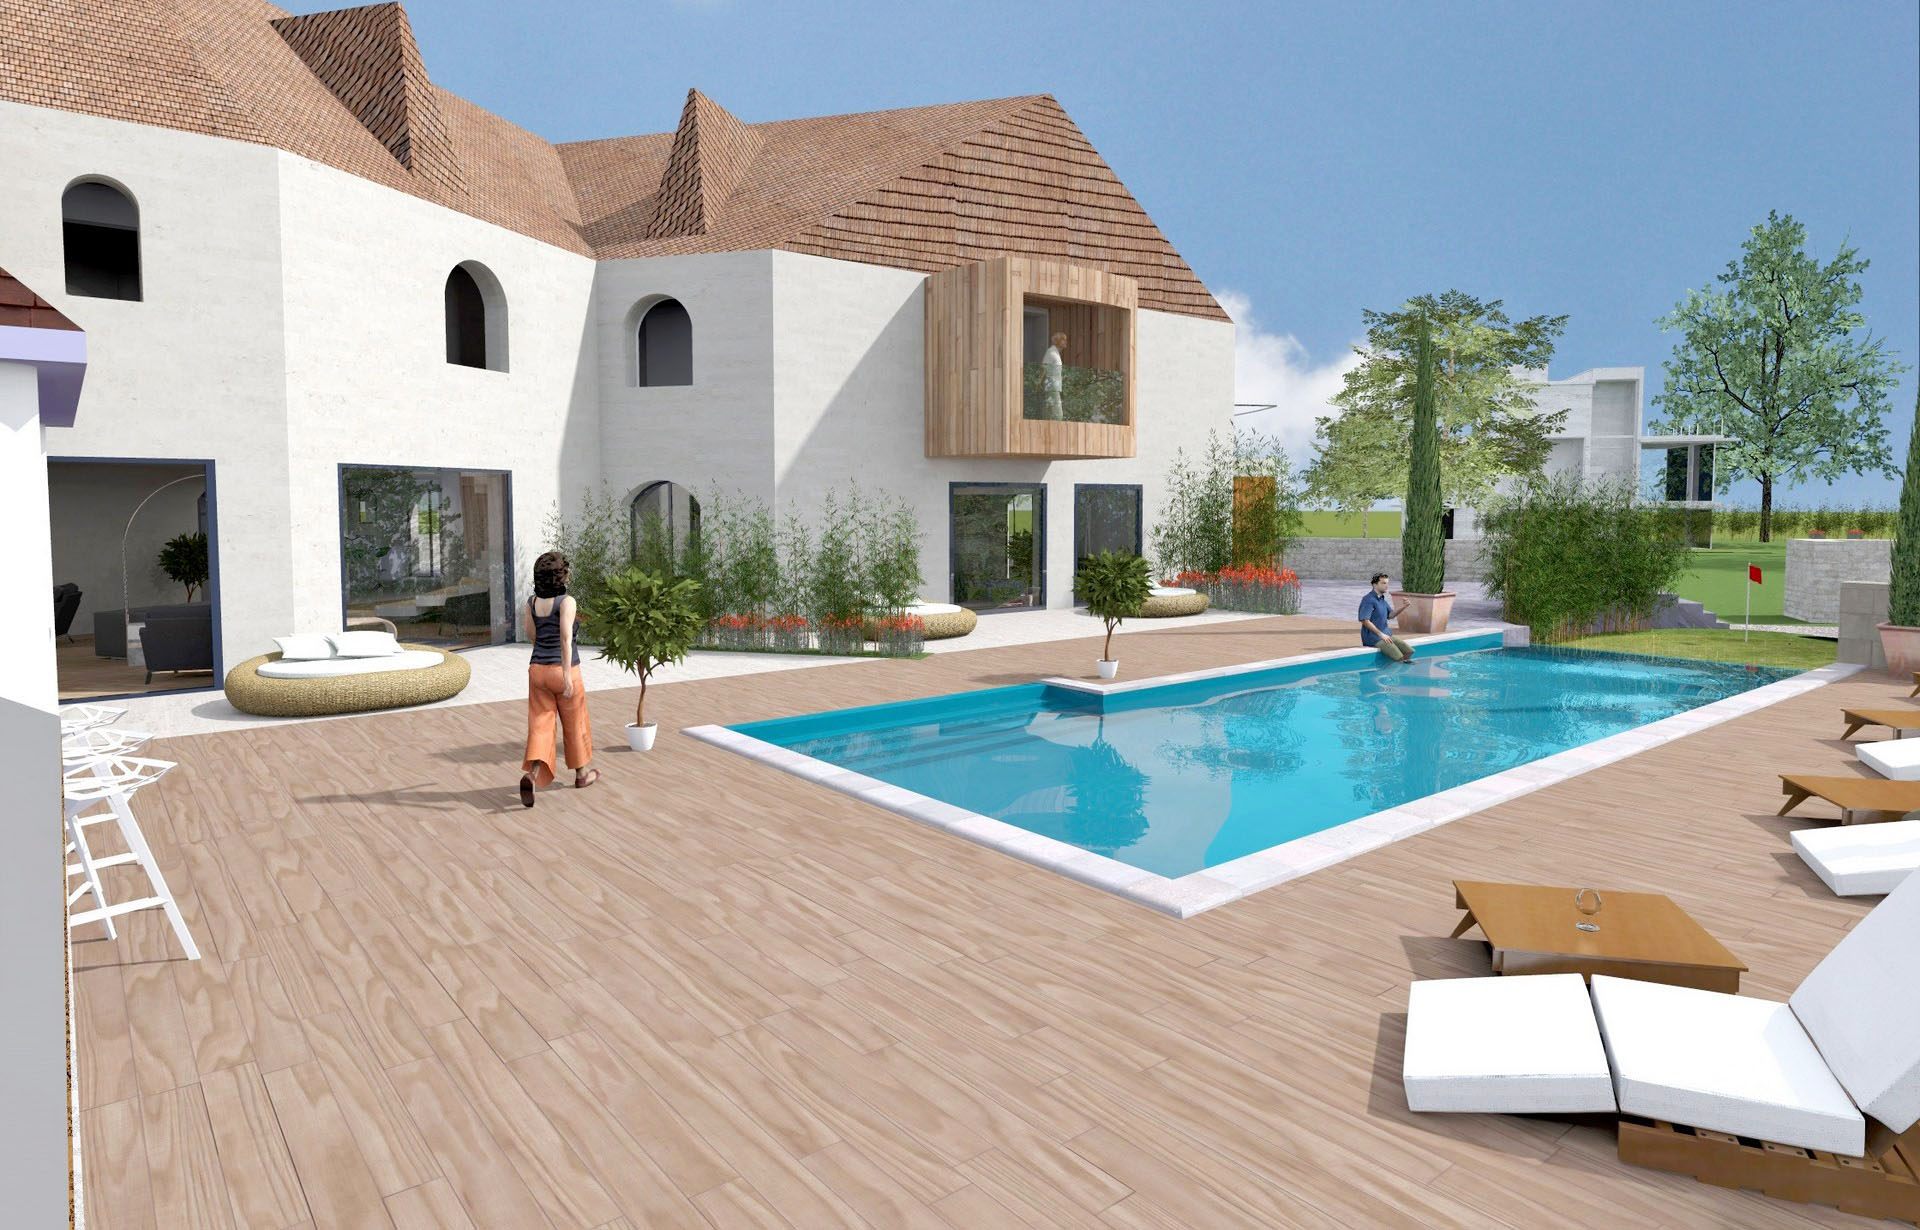 Piscine exterieur amenagement accueil design et mobilier for Amenagement d une piscine